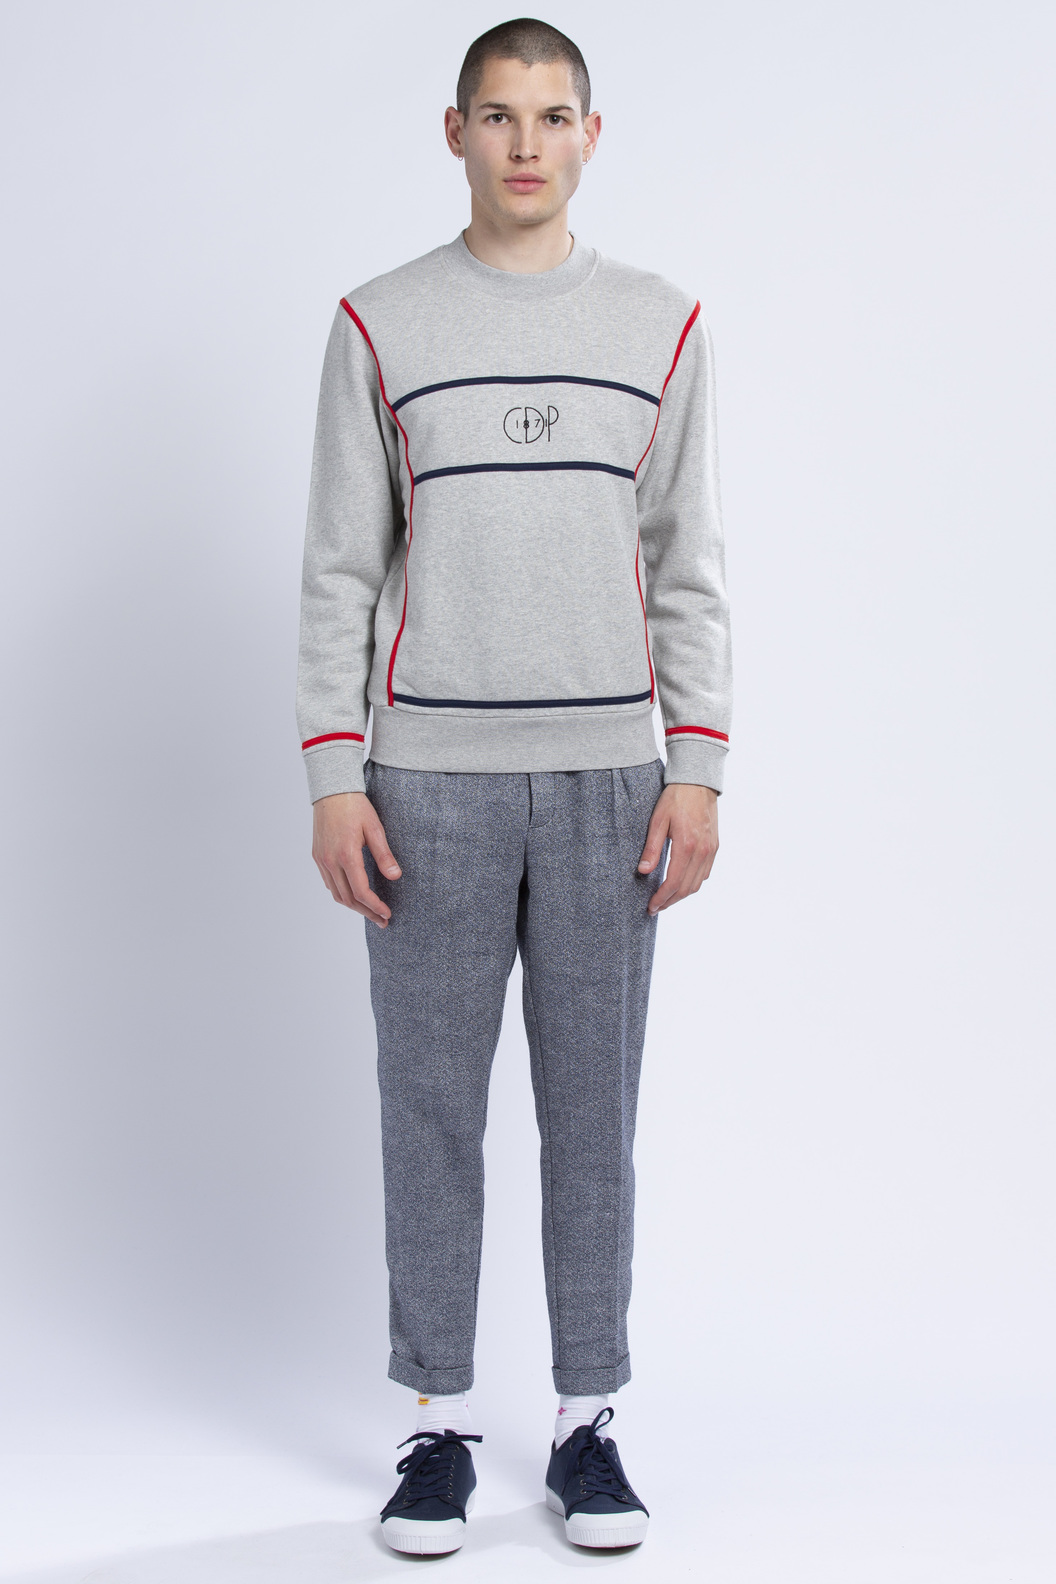 SWEAT MONDRIAN - Marl grey